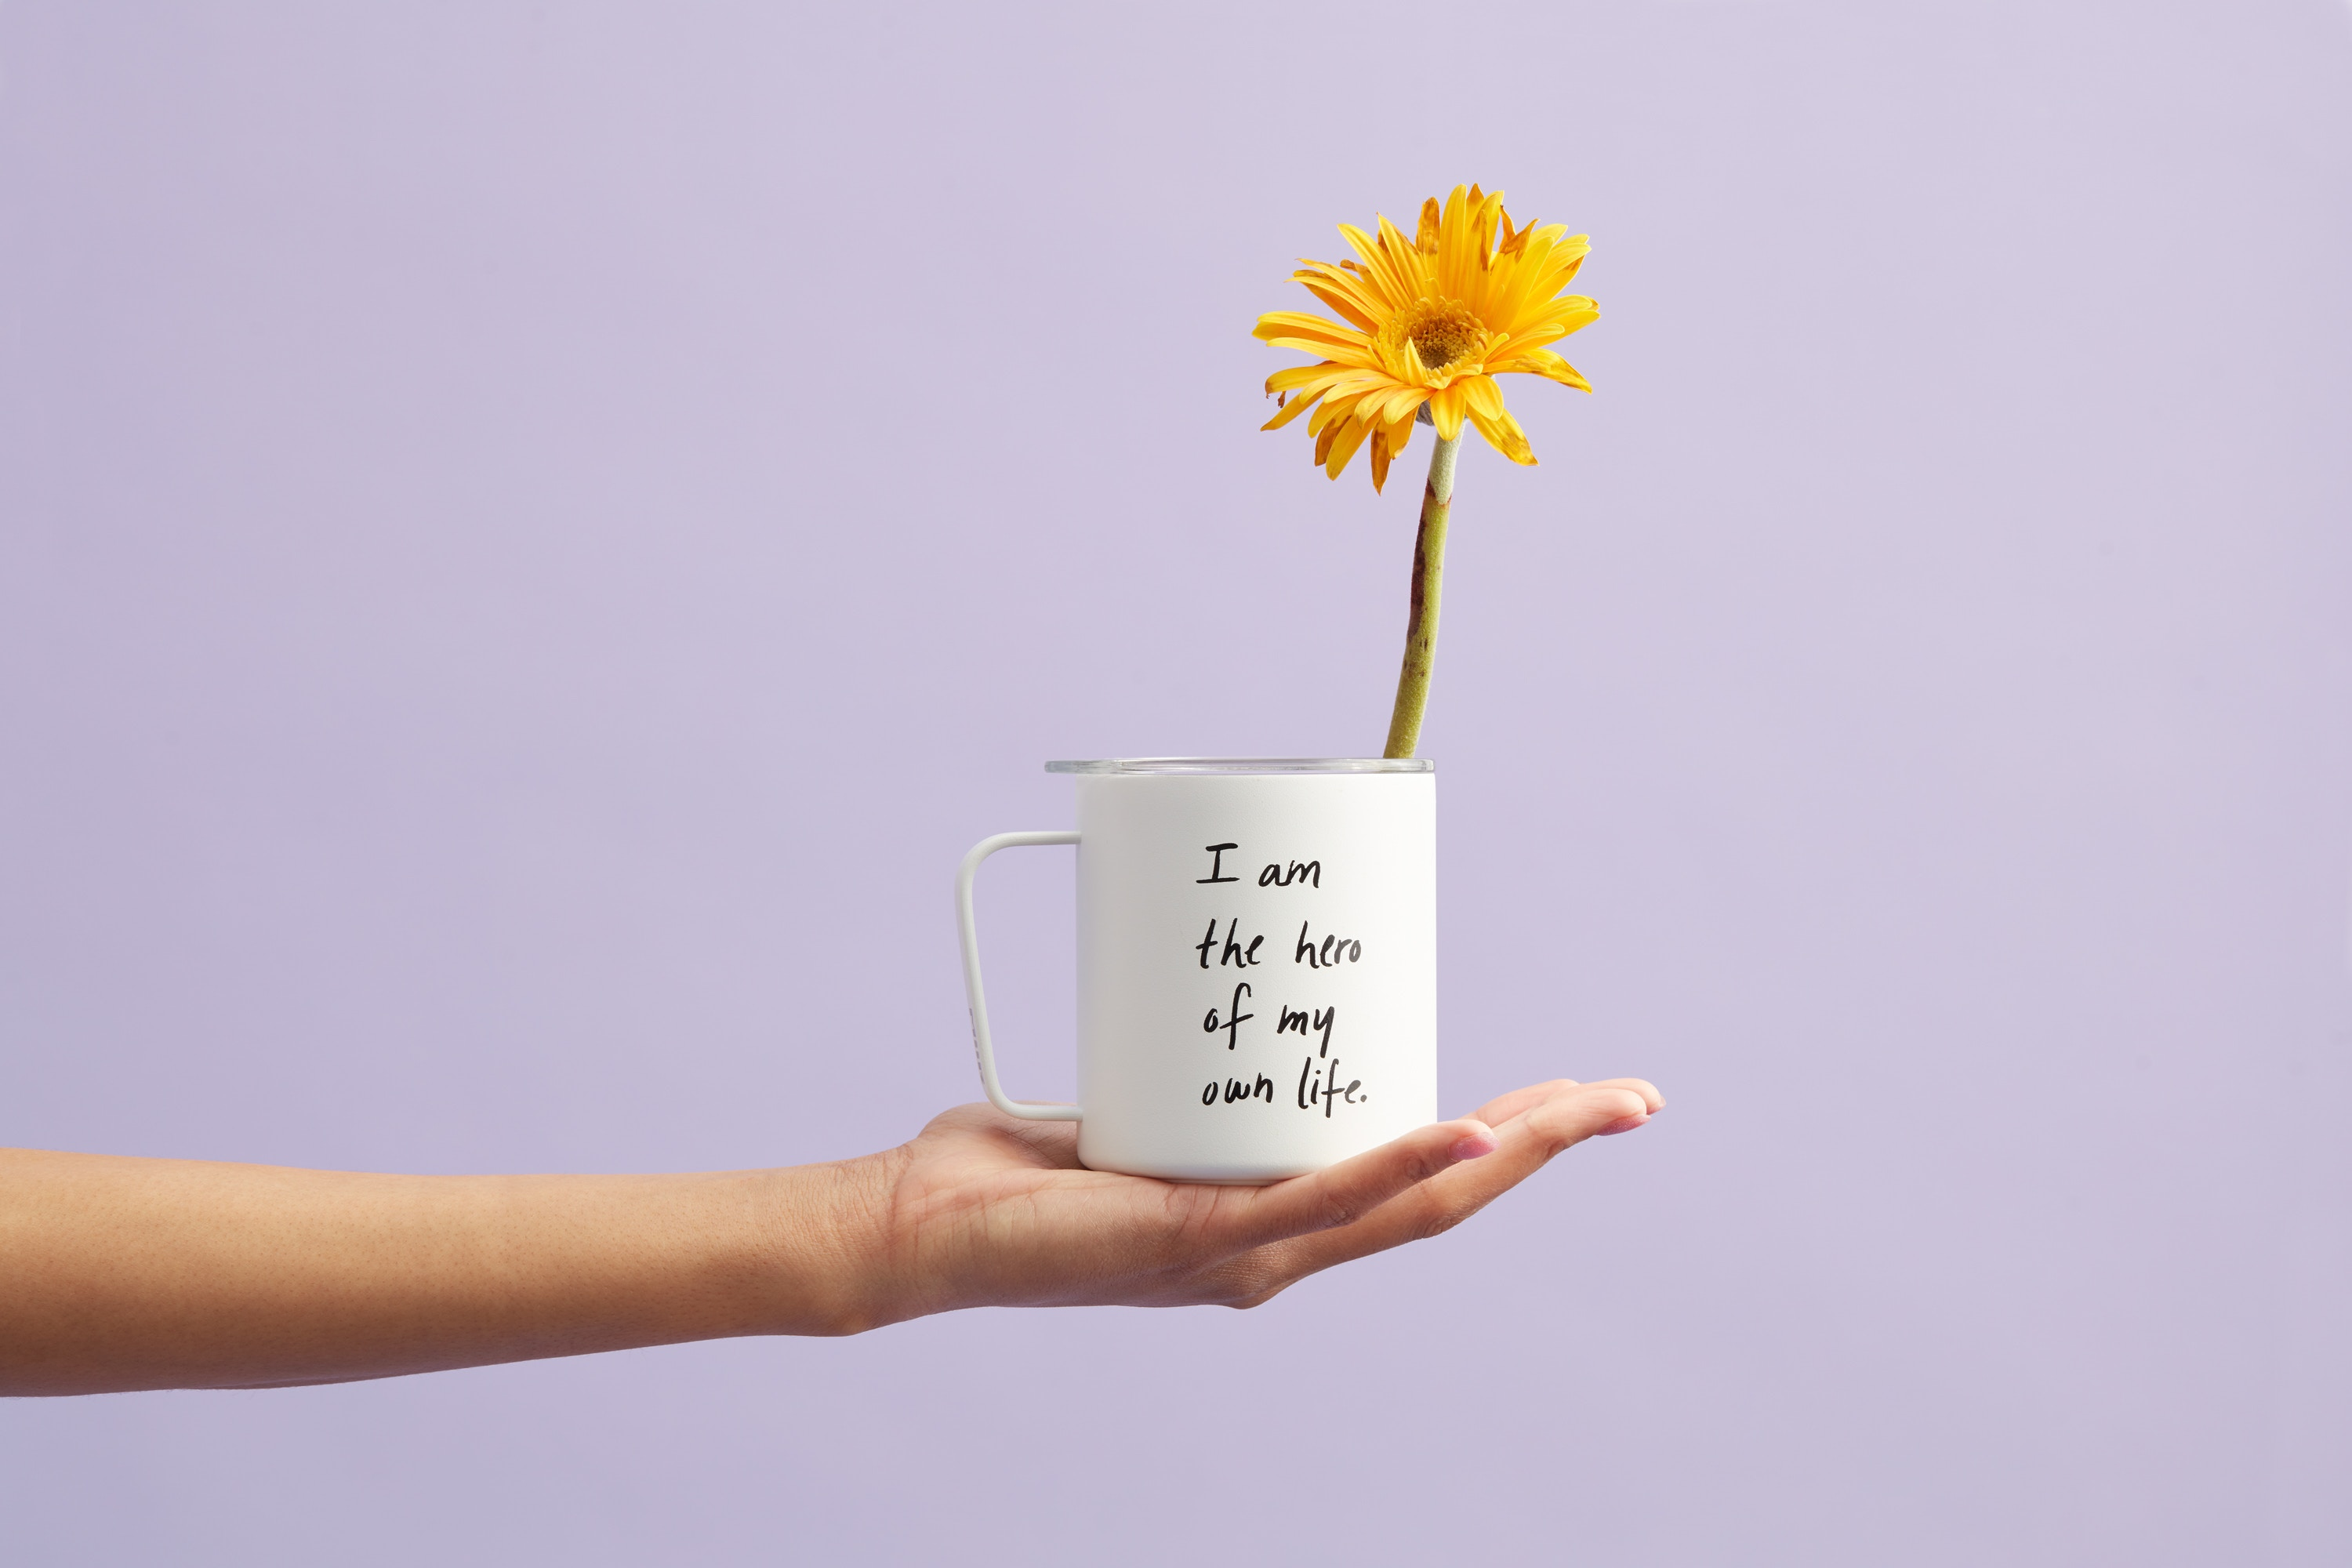 101634 Screensavers and Wallpapers Hand for phone. Download Words, Cup, Mug, Inscription, Self-Affirmation, Motivation, Flower, Hand pictures for free